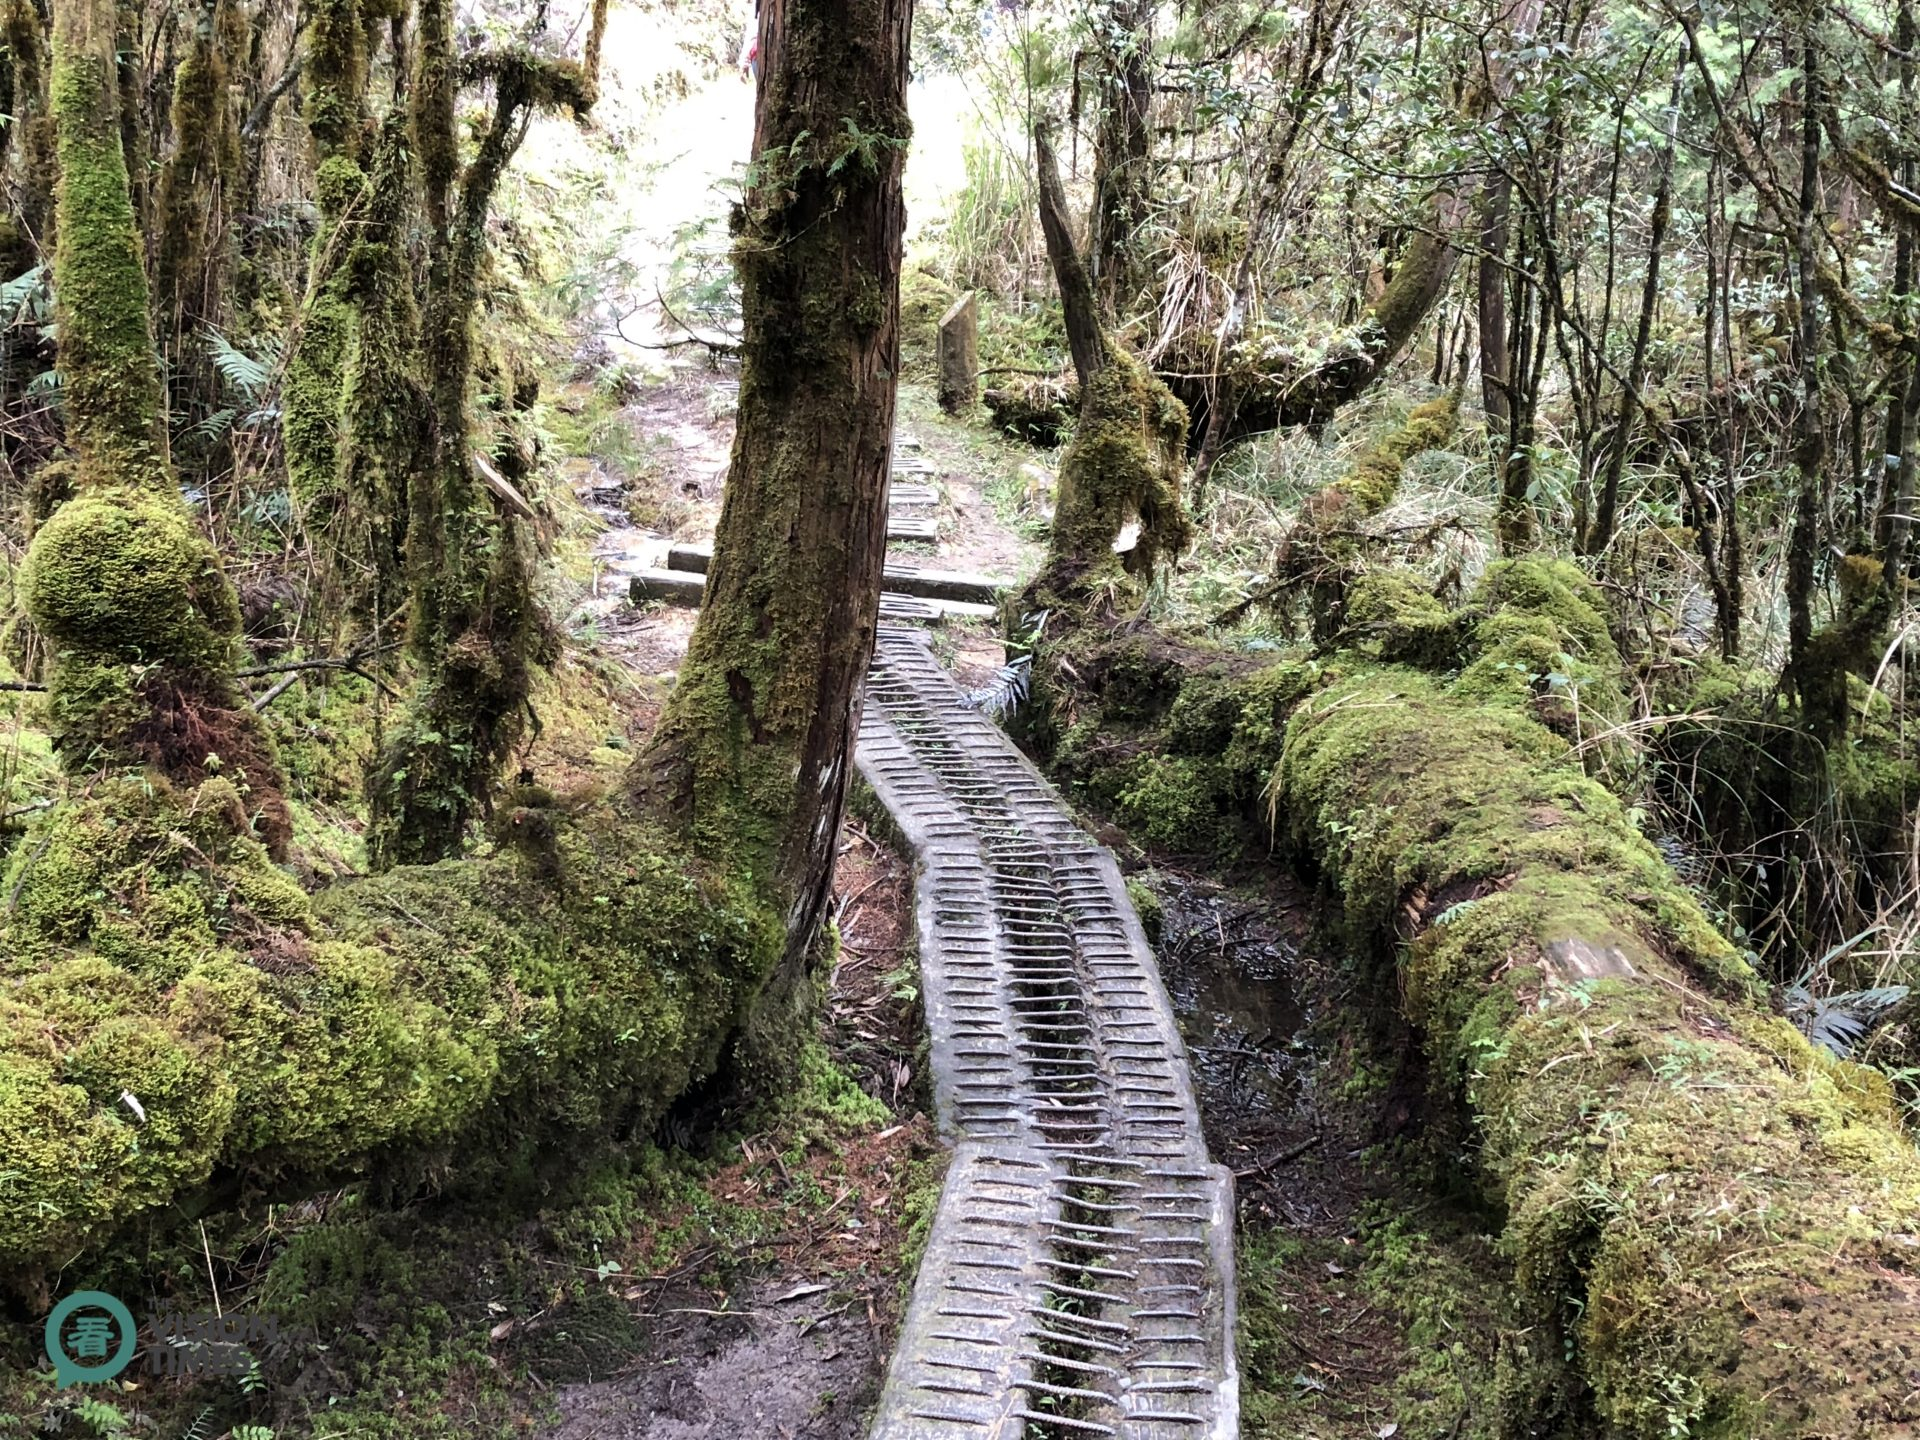 The Cueifong Lake Circular Trail is 3.95 km long, and it takes about 2.5 hours for a round trip. (Image: Billy Shyu / Vision Times)